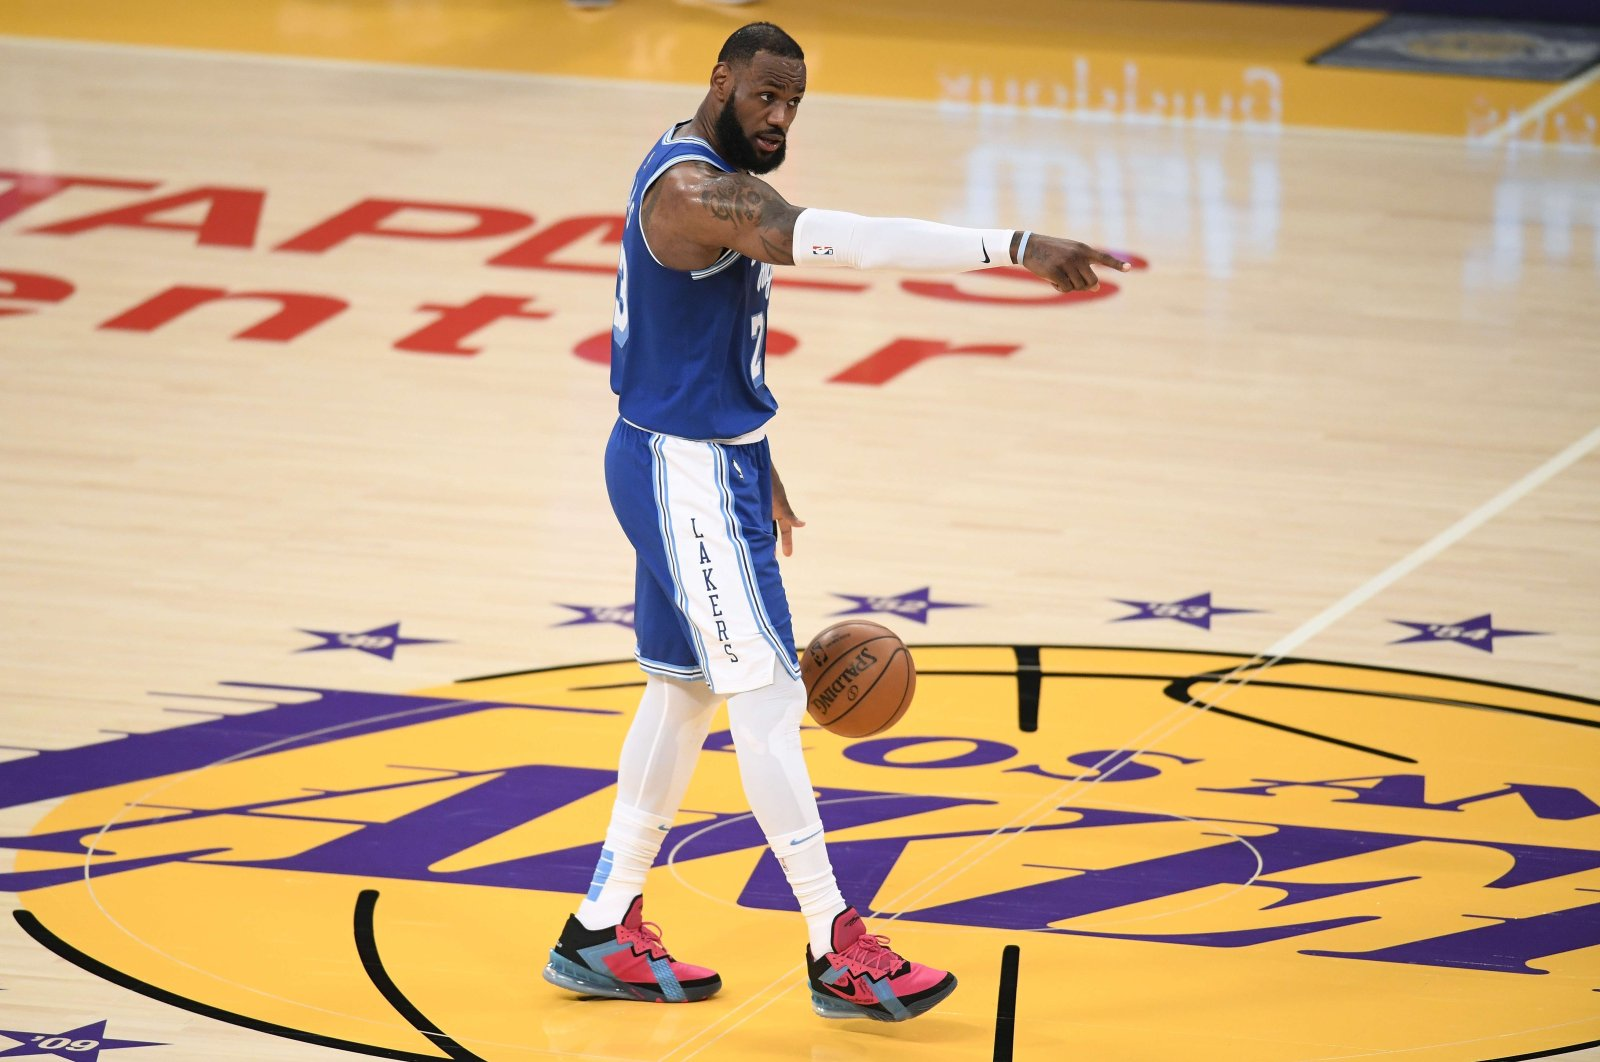 Los Angeles Lakers forwardLeBron James gestures during an NBA match against Minnesota Timberwolves at Staples Center, Los Angeles, California, March 16, 2021. (AFP Photo)